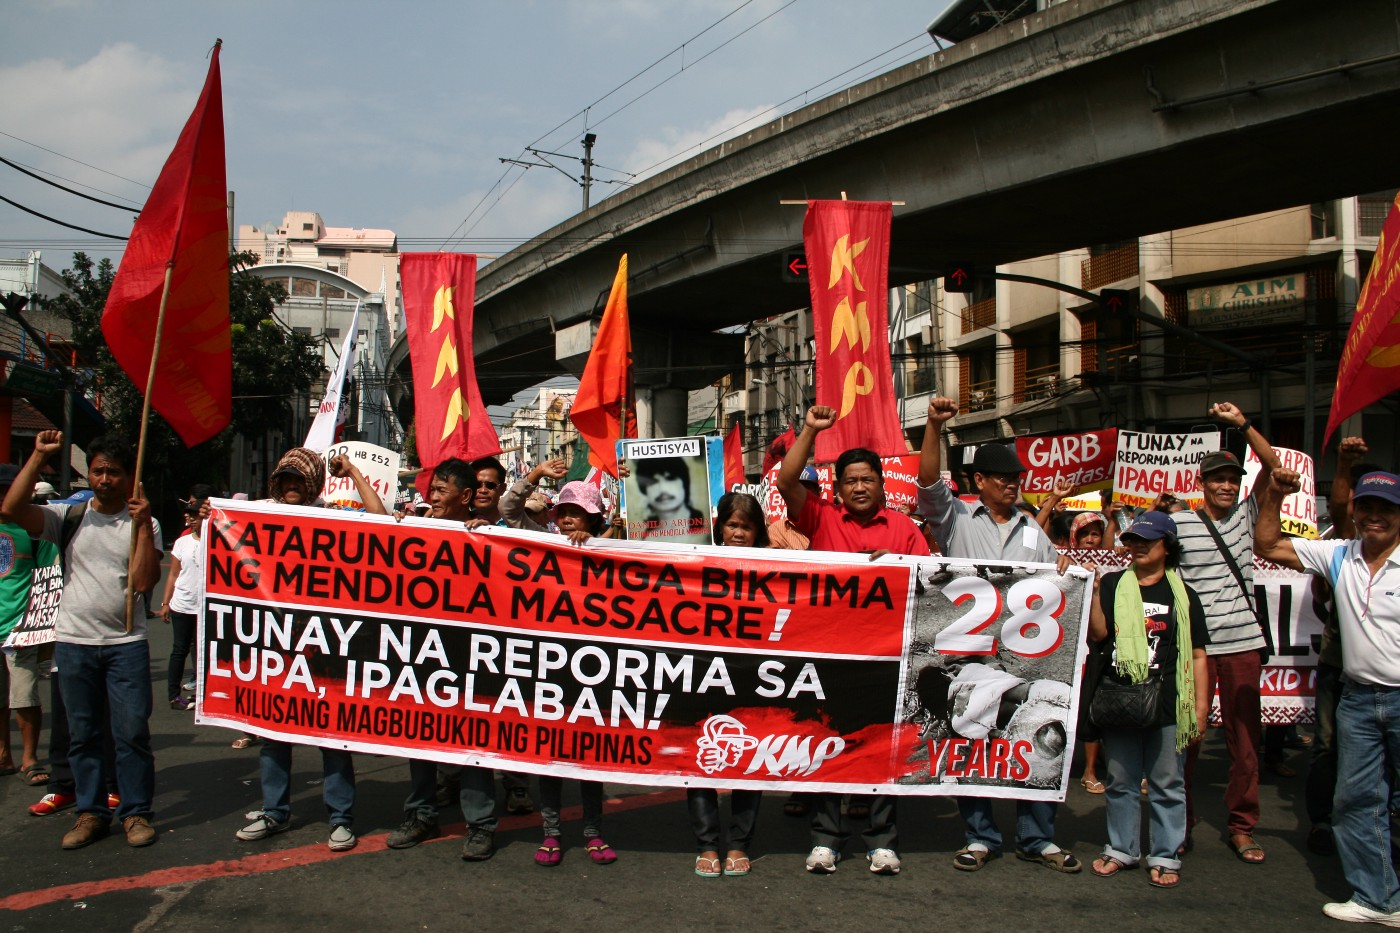 A crowd of protesters holding vertical red flags and carrying a large banner with Tagalog writing.